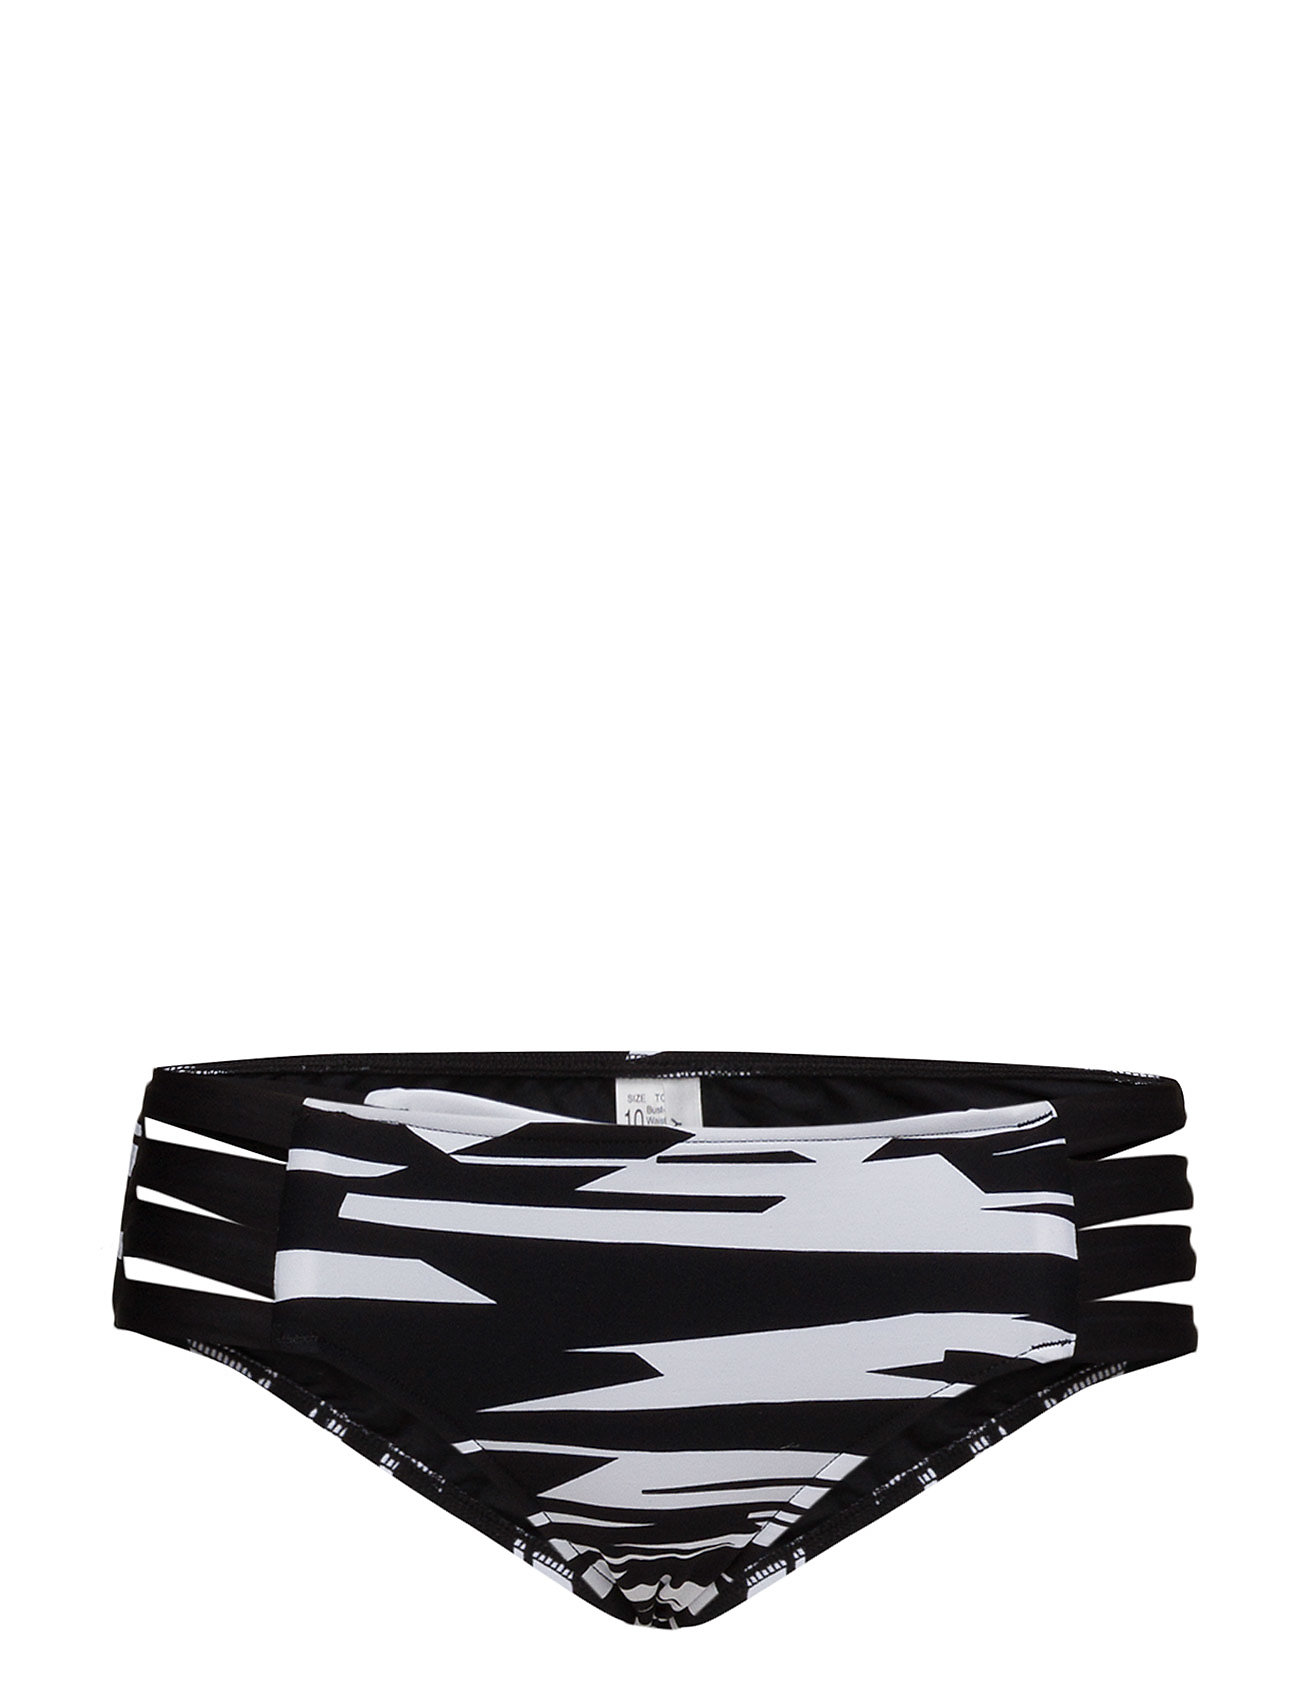 Seafolly Fastlane Multi Strap Hipster - BLACK WHITE